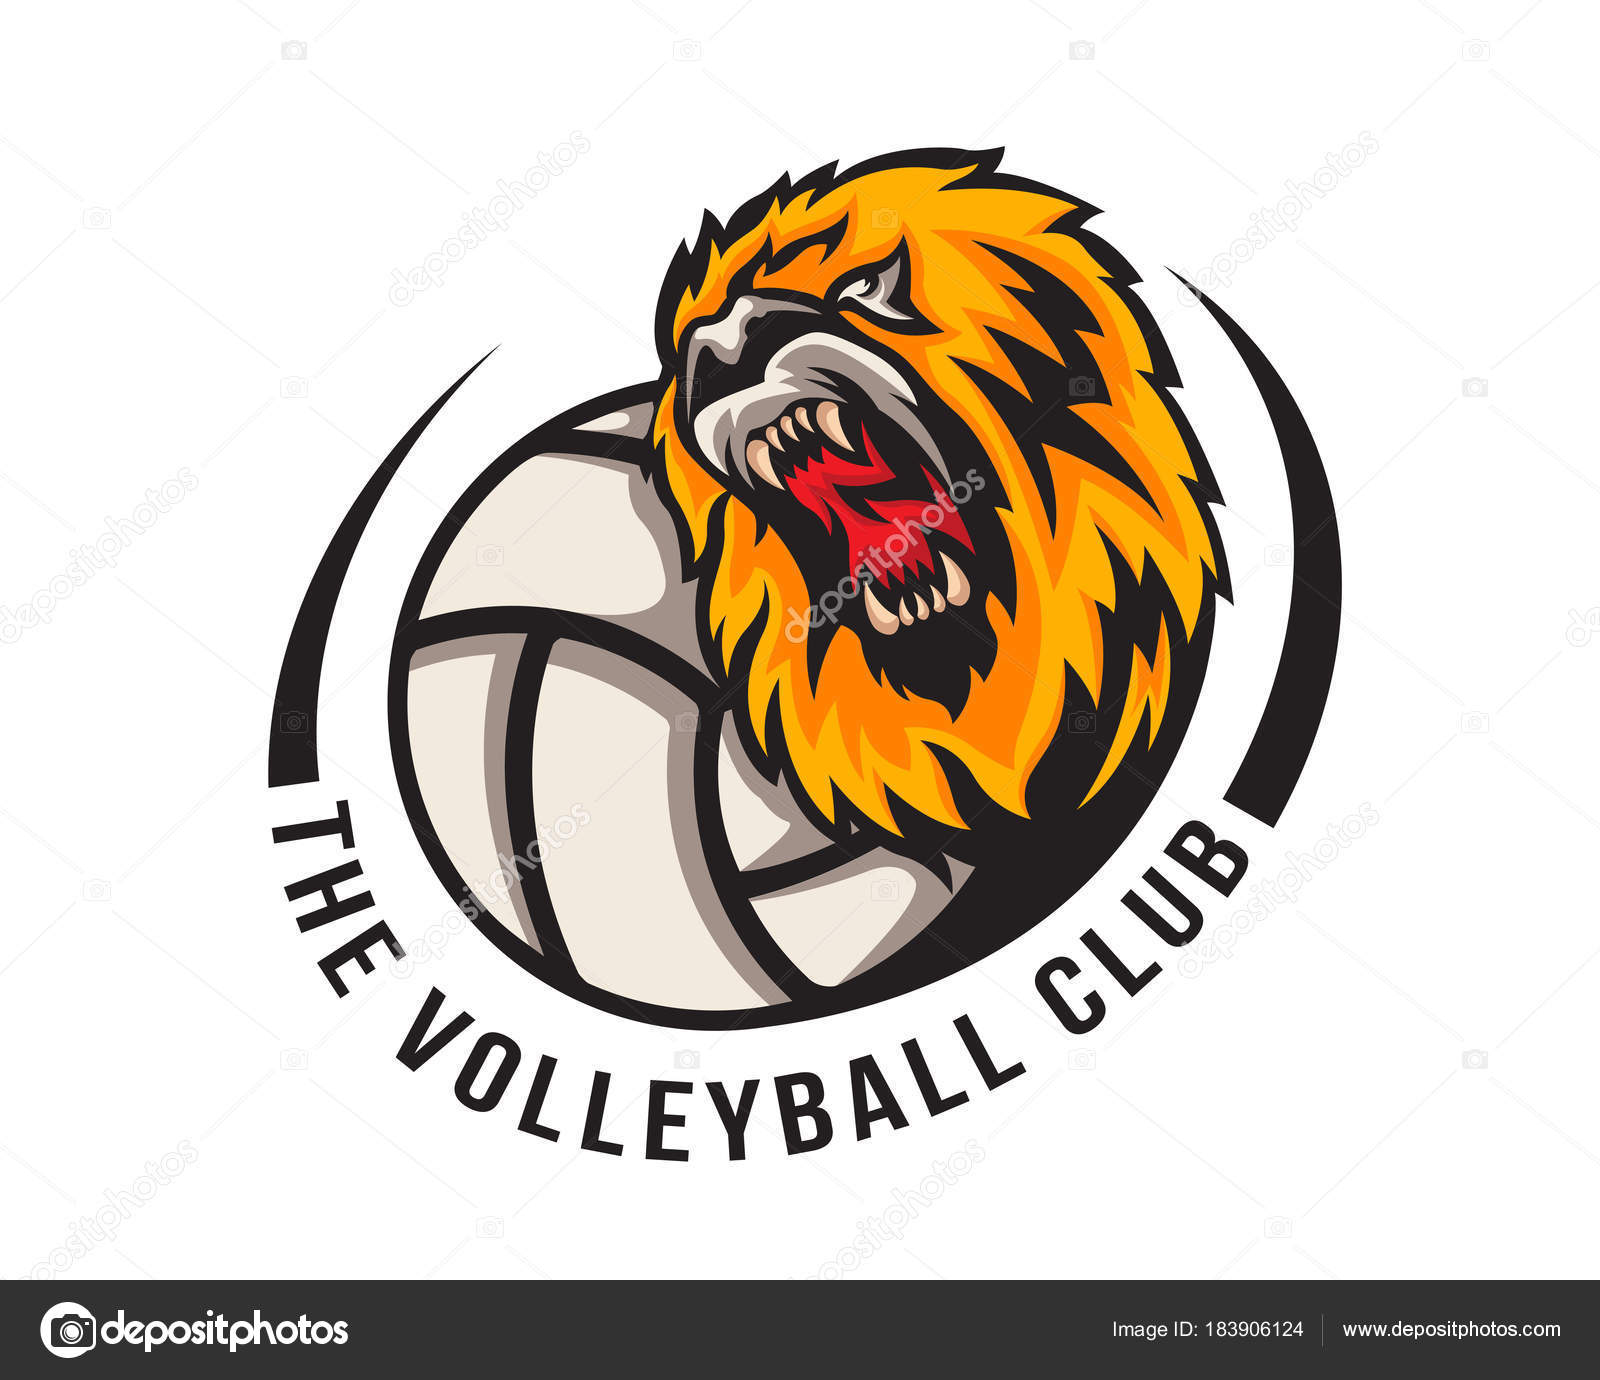 Modern Volleyball Logo Aggressive Lion Volleyball Ball Illustration Stock Vector C Naulicreative 183906124